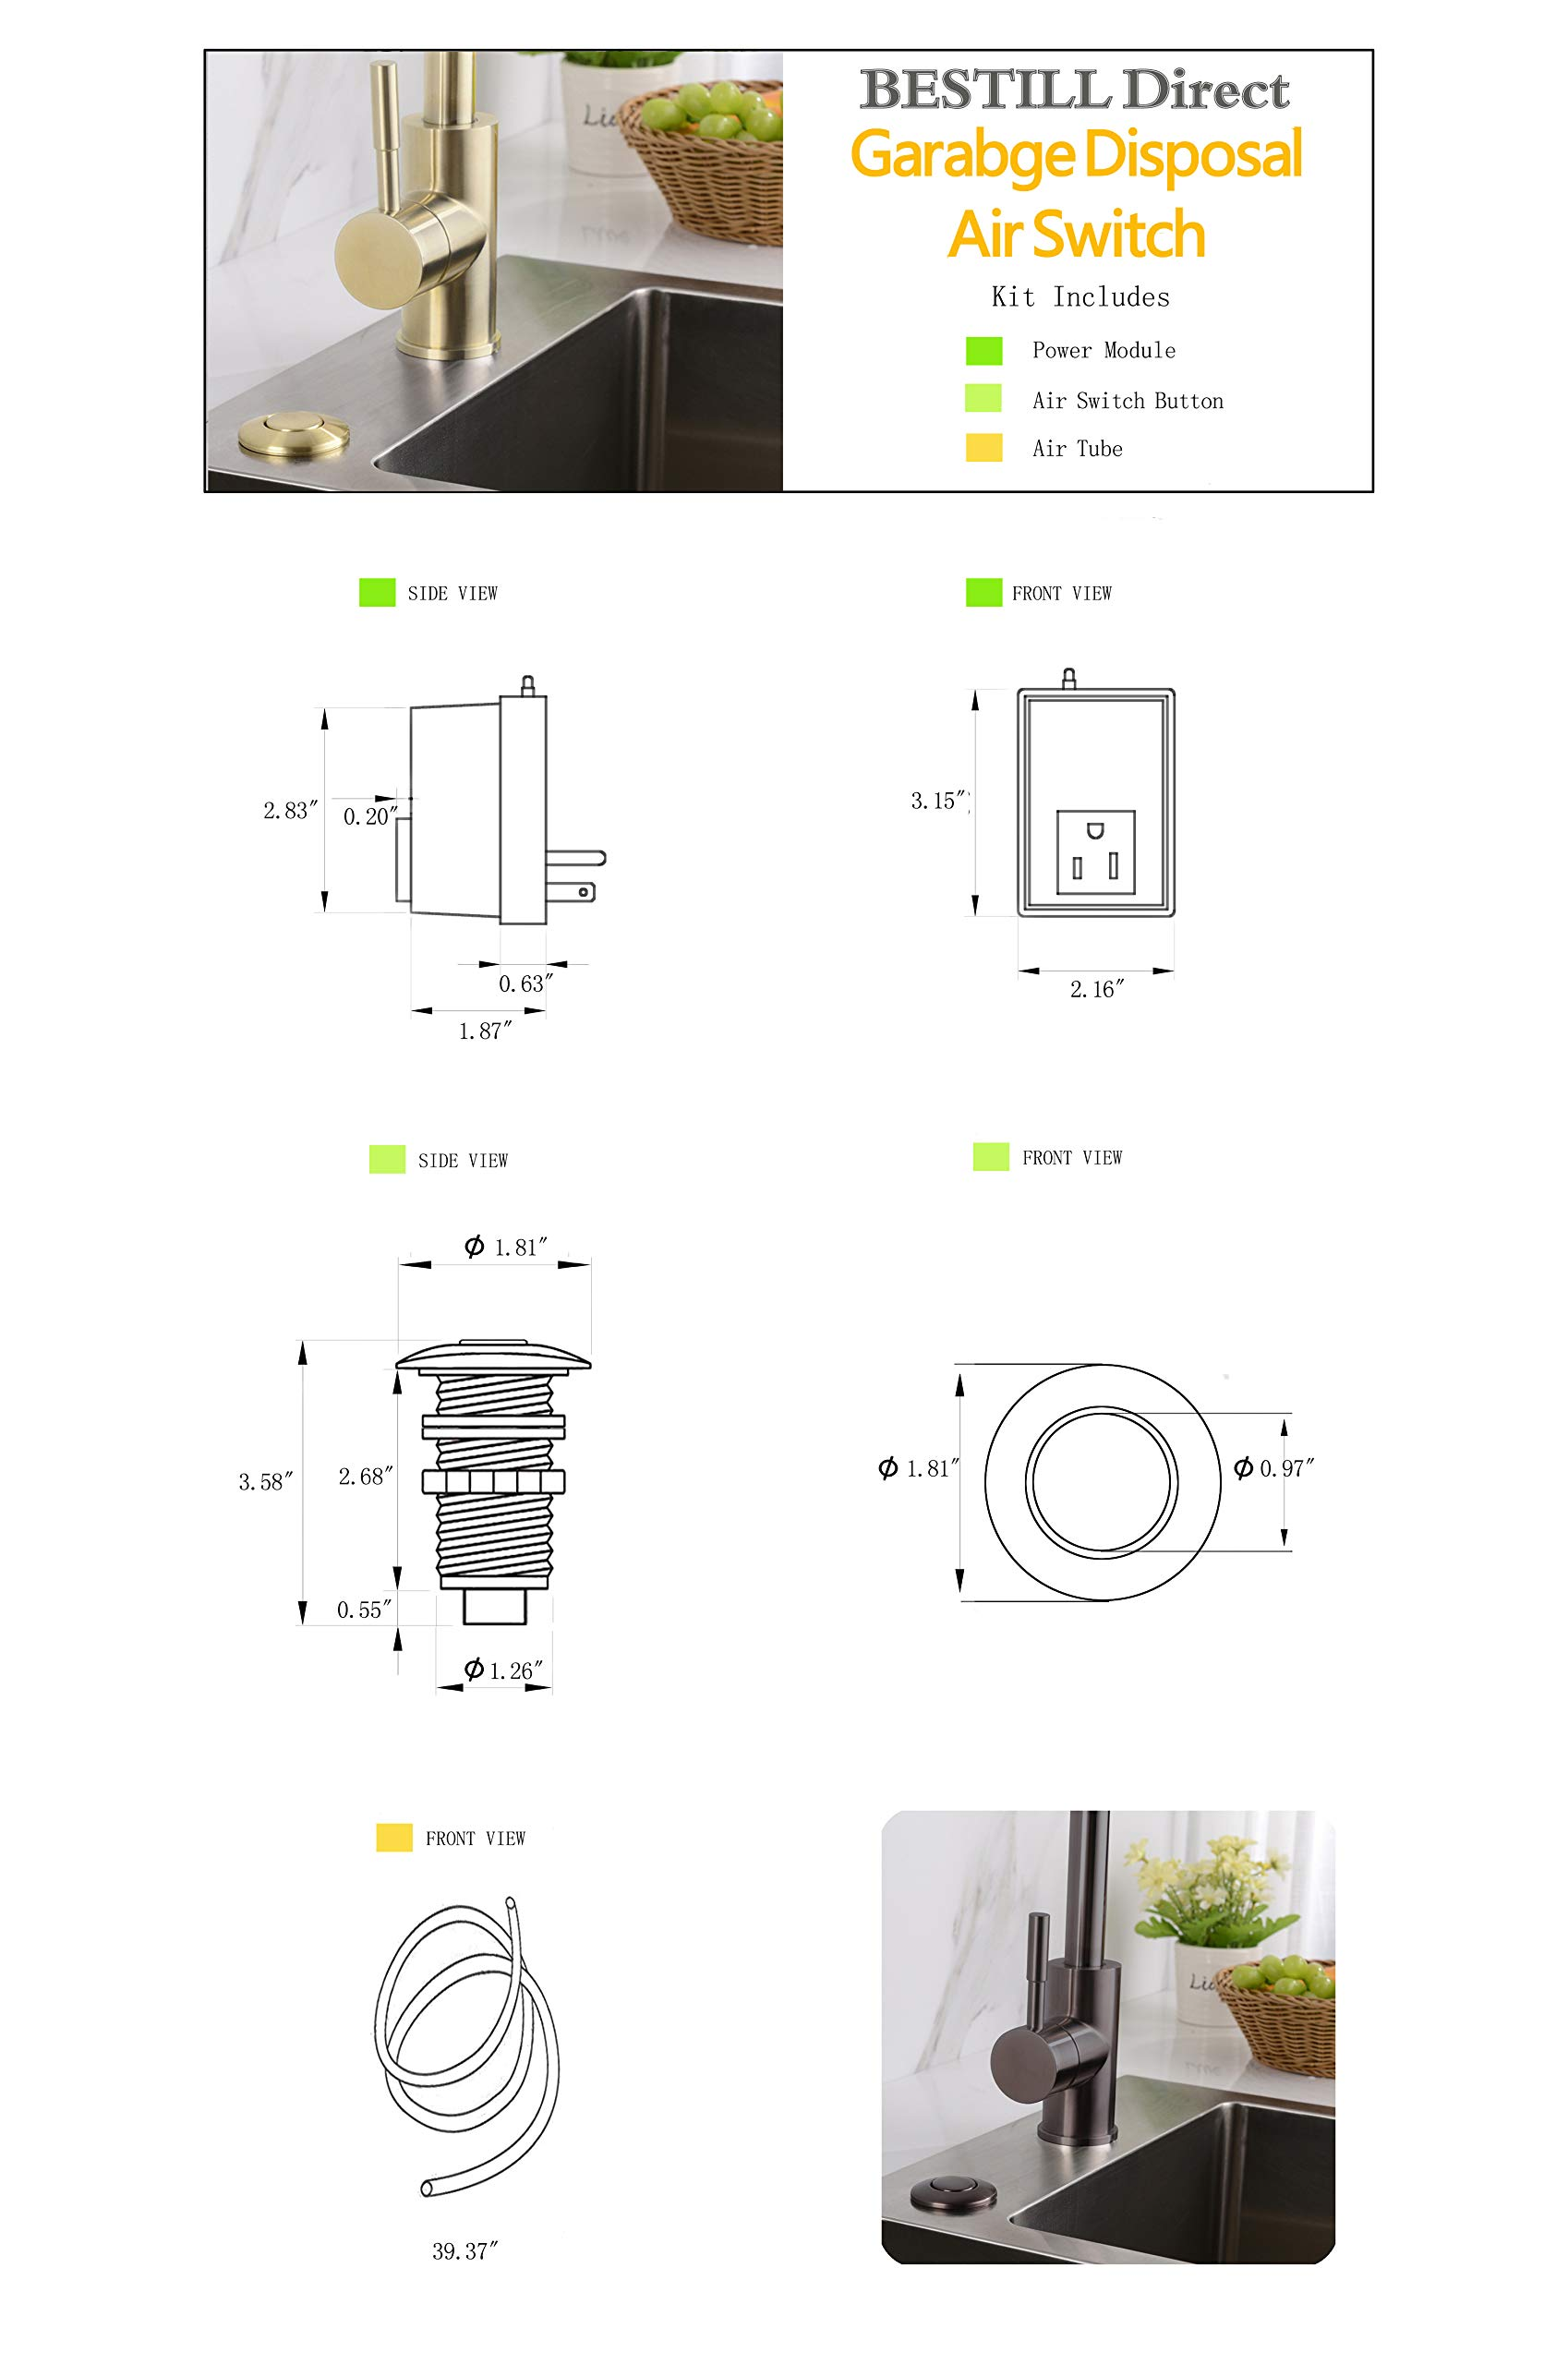 BESTILL Garbage Disposal Sink Top Air Switch Kit with Single Outlet, Brushed Nickel by BESTILL (Image #7)